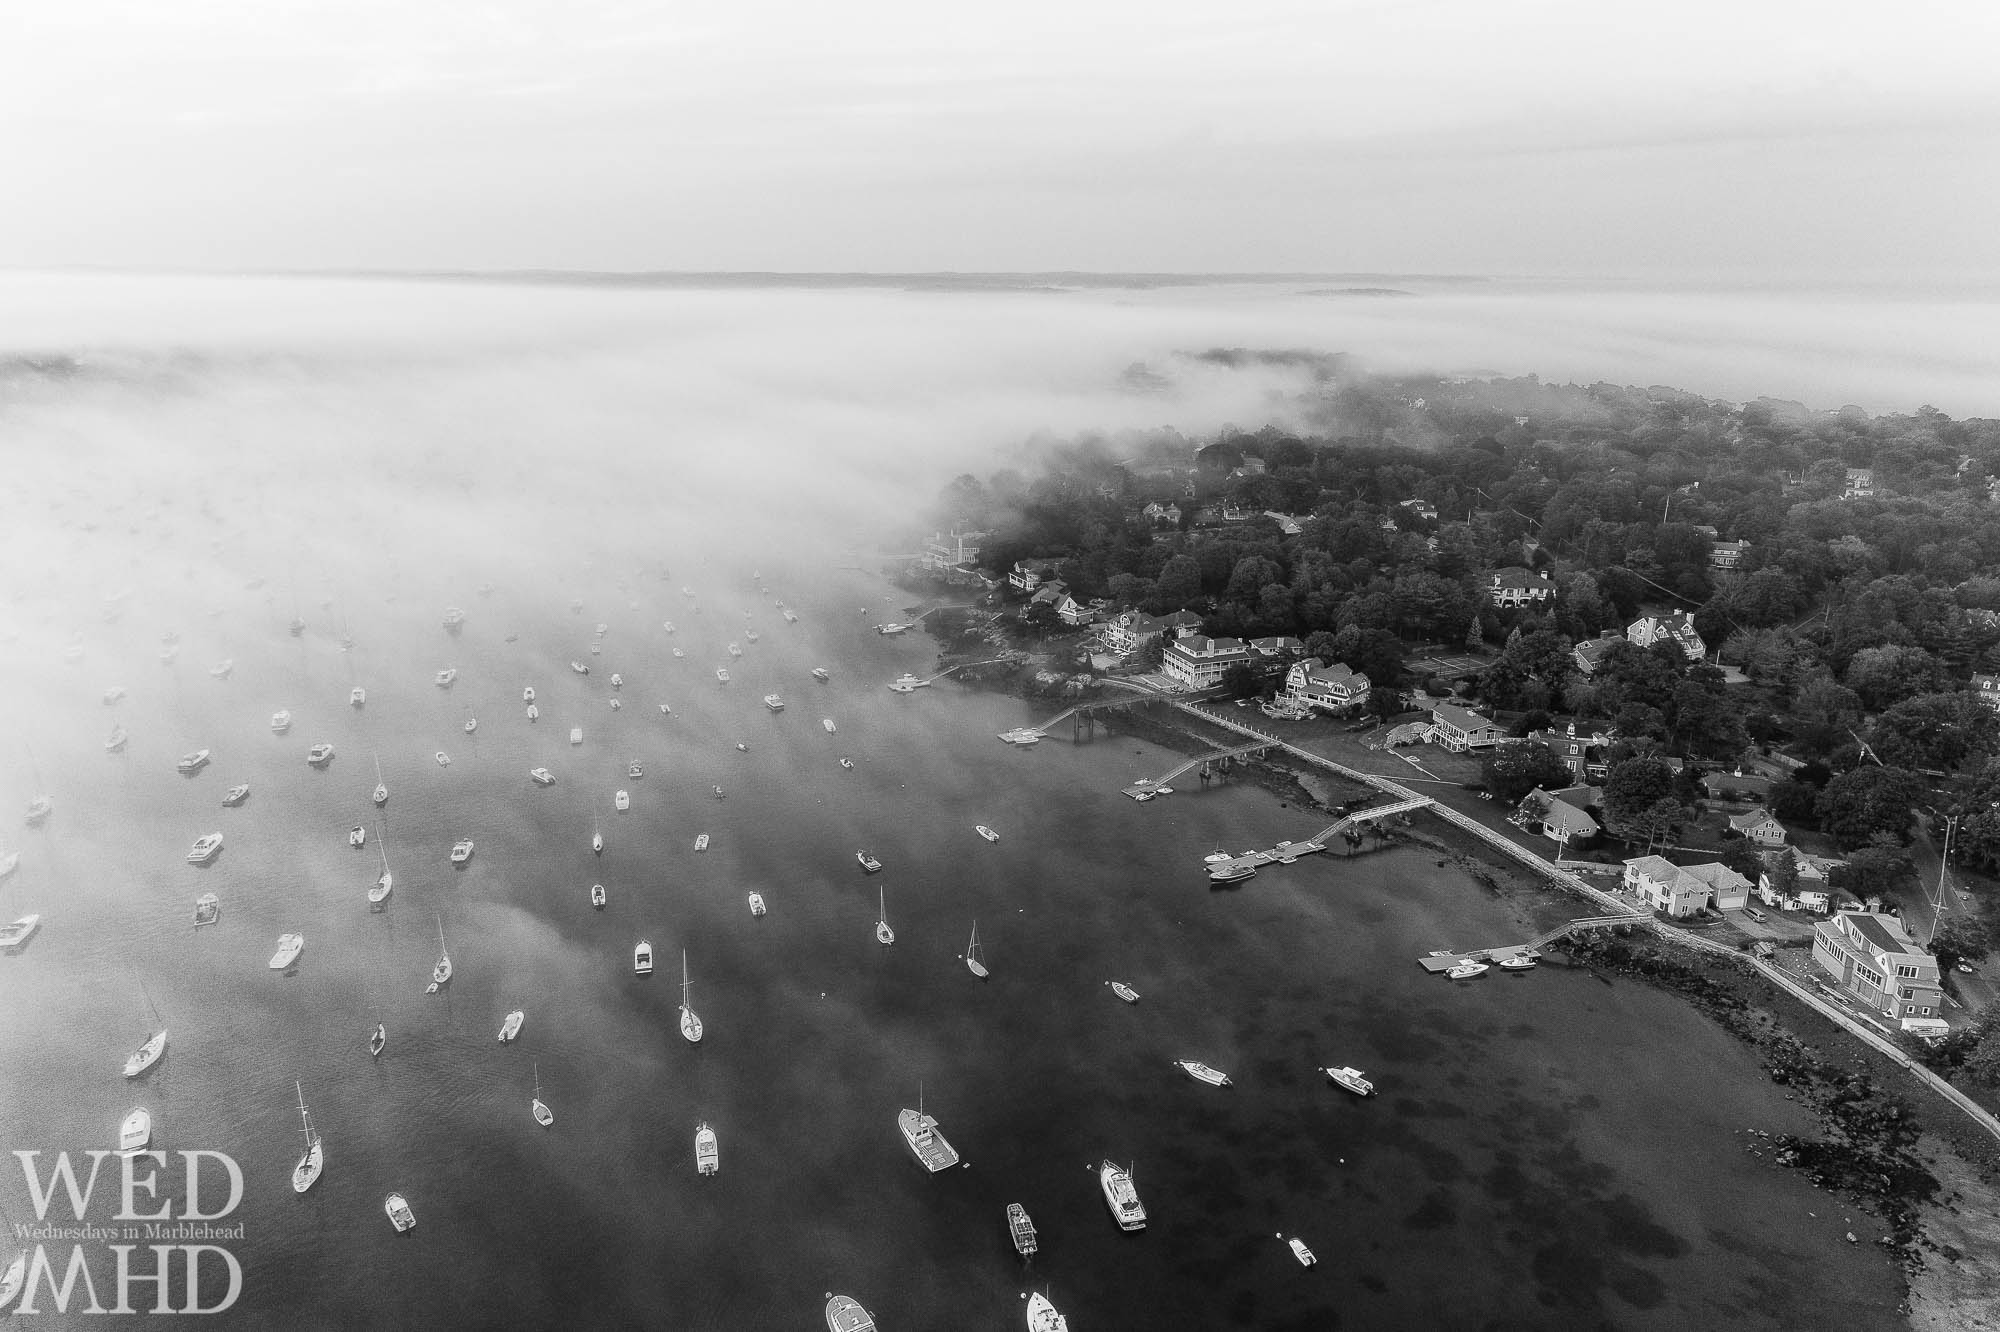 The fog rolls in over Marblehead harbor and the neck in this aerial image captured on a mid July evening